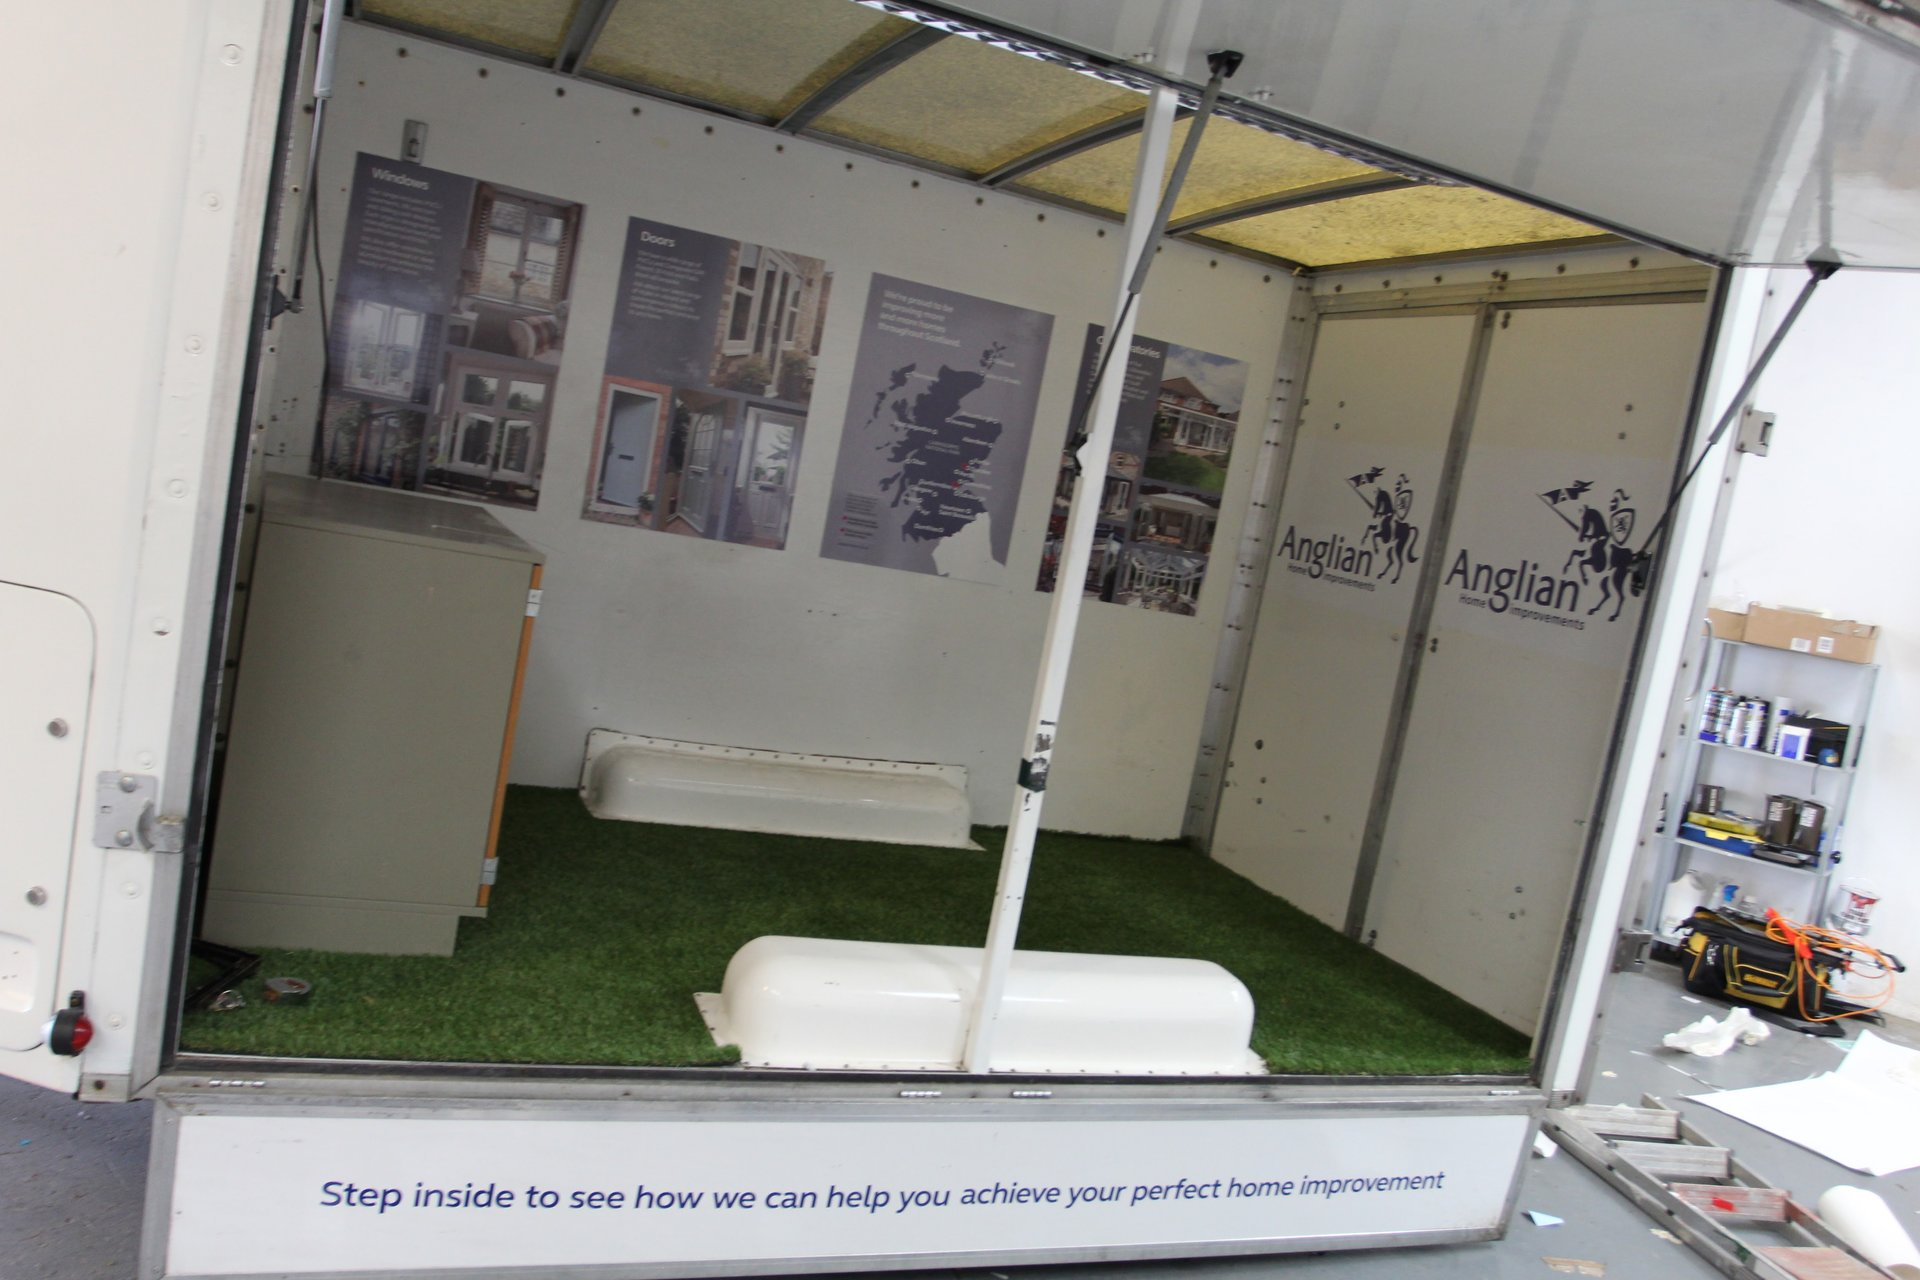 Exhibition Stand Design Glasgow : Suppliers of exhibition stands displays and banners in